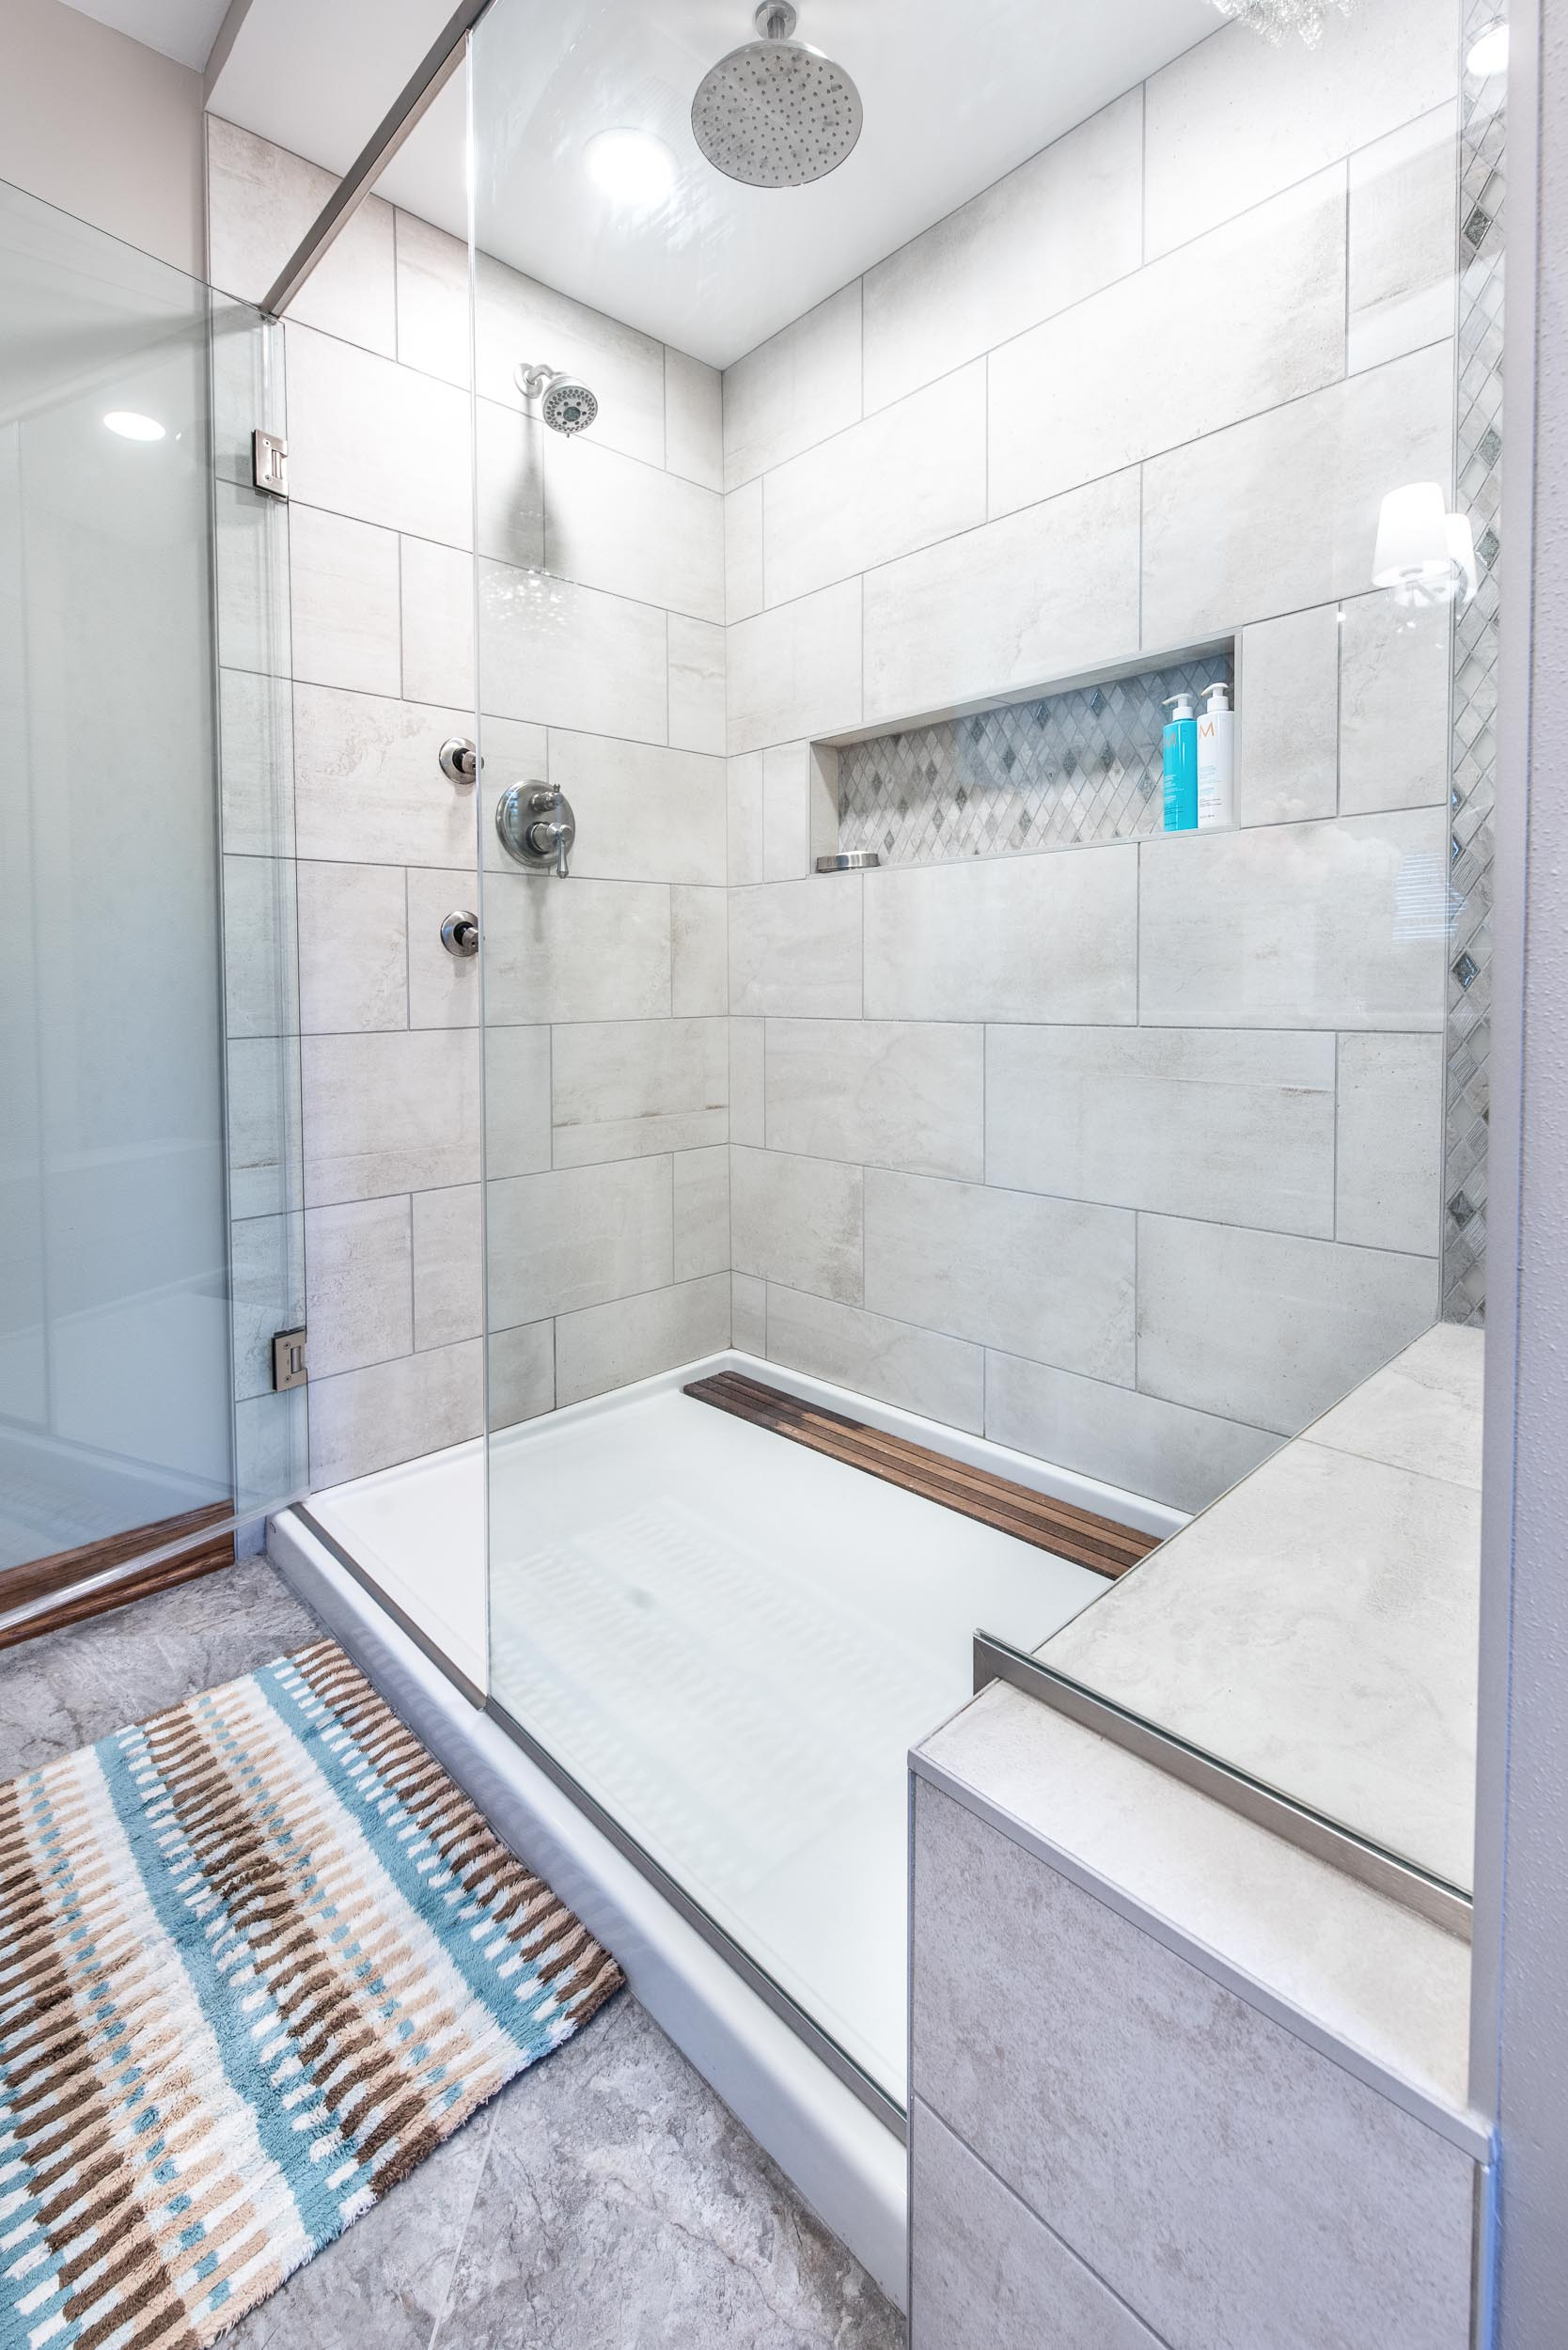 """The Shower Tile is Biocrete Field 12"""" x 24"""" in Melted Ice."""